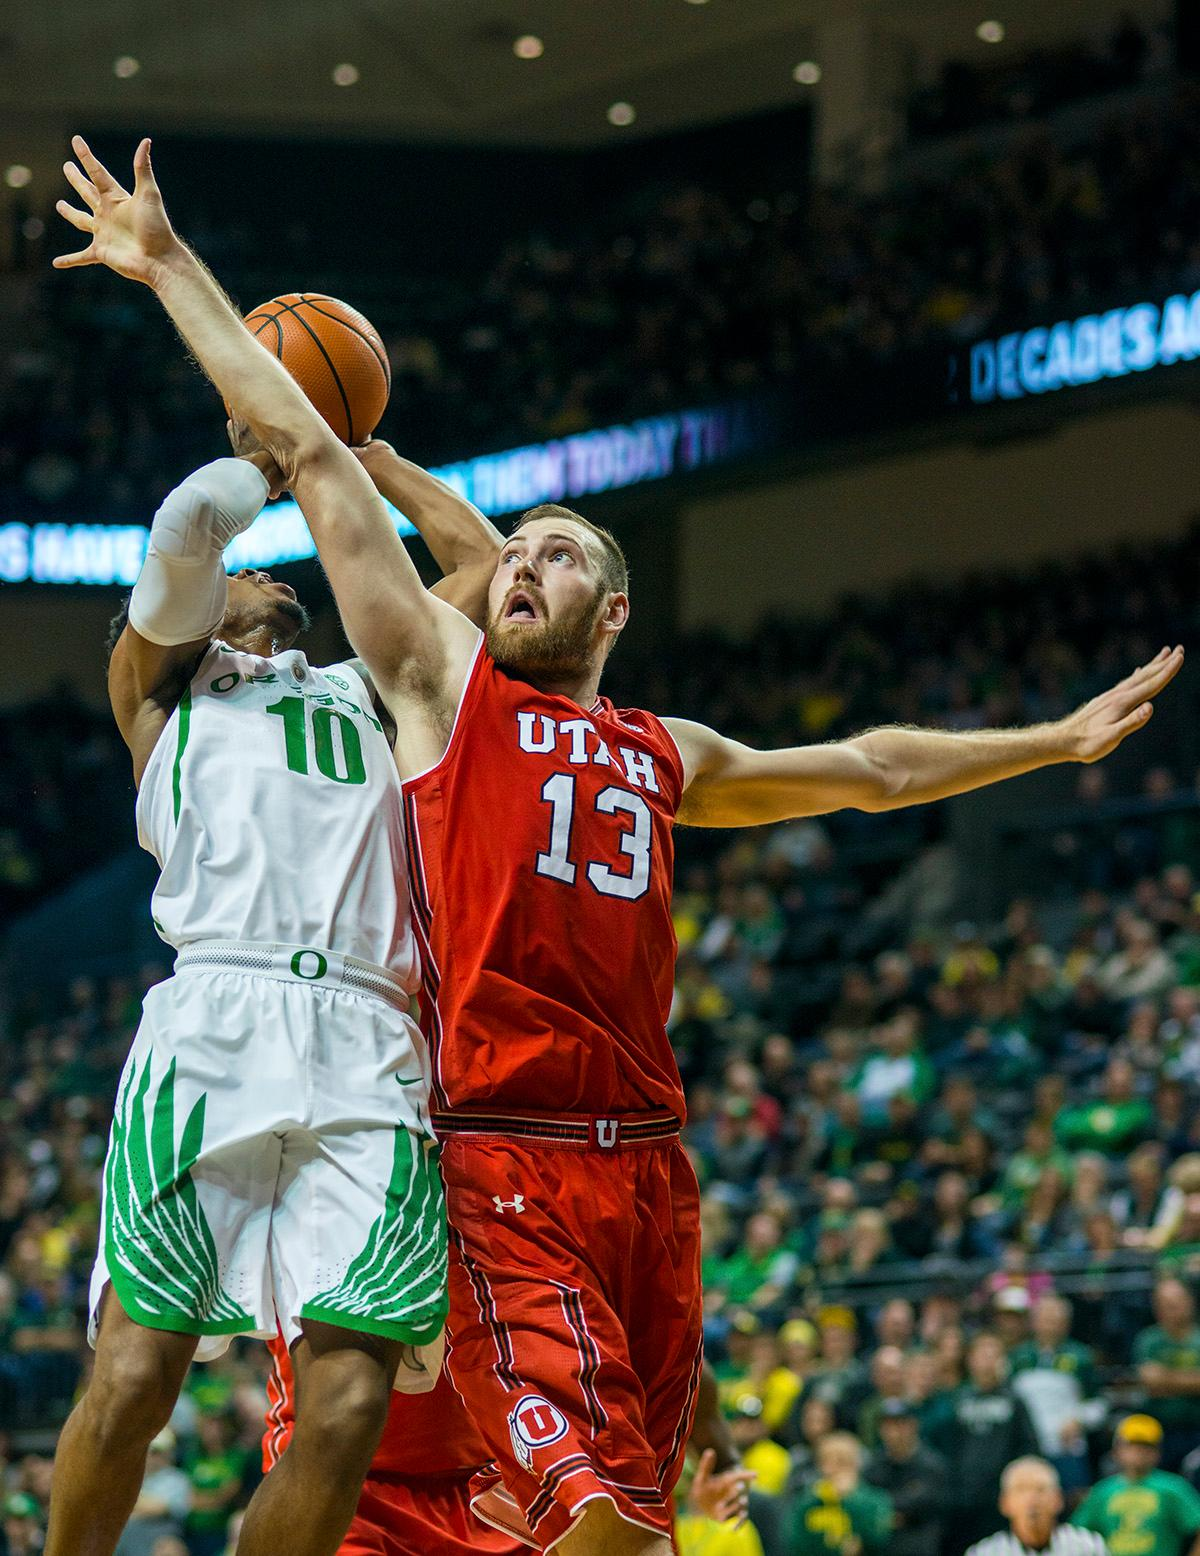 Oregon Ducks Victor Bailey Jr. (#10) aims for the basket as Utah Utes David Collette (#13) attempts to block him. The Utah Utes defeated the Oregon Ducks 66-56 on Friday night at Matthew Knight Arena. This is the first Pac-12 conference game loss at home for the Ducks since January of 2015. This also ended the five home game winning streak for the Ducks against the Utah Utes. Photo by Rhianna Gelhart, Oregon News Lab